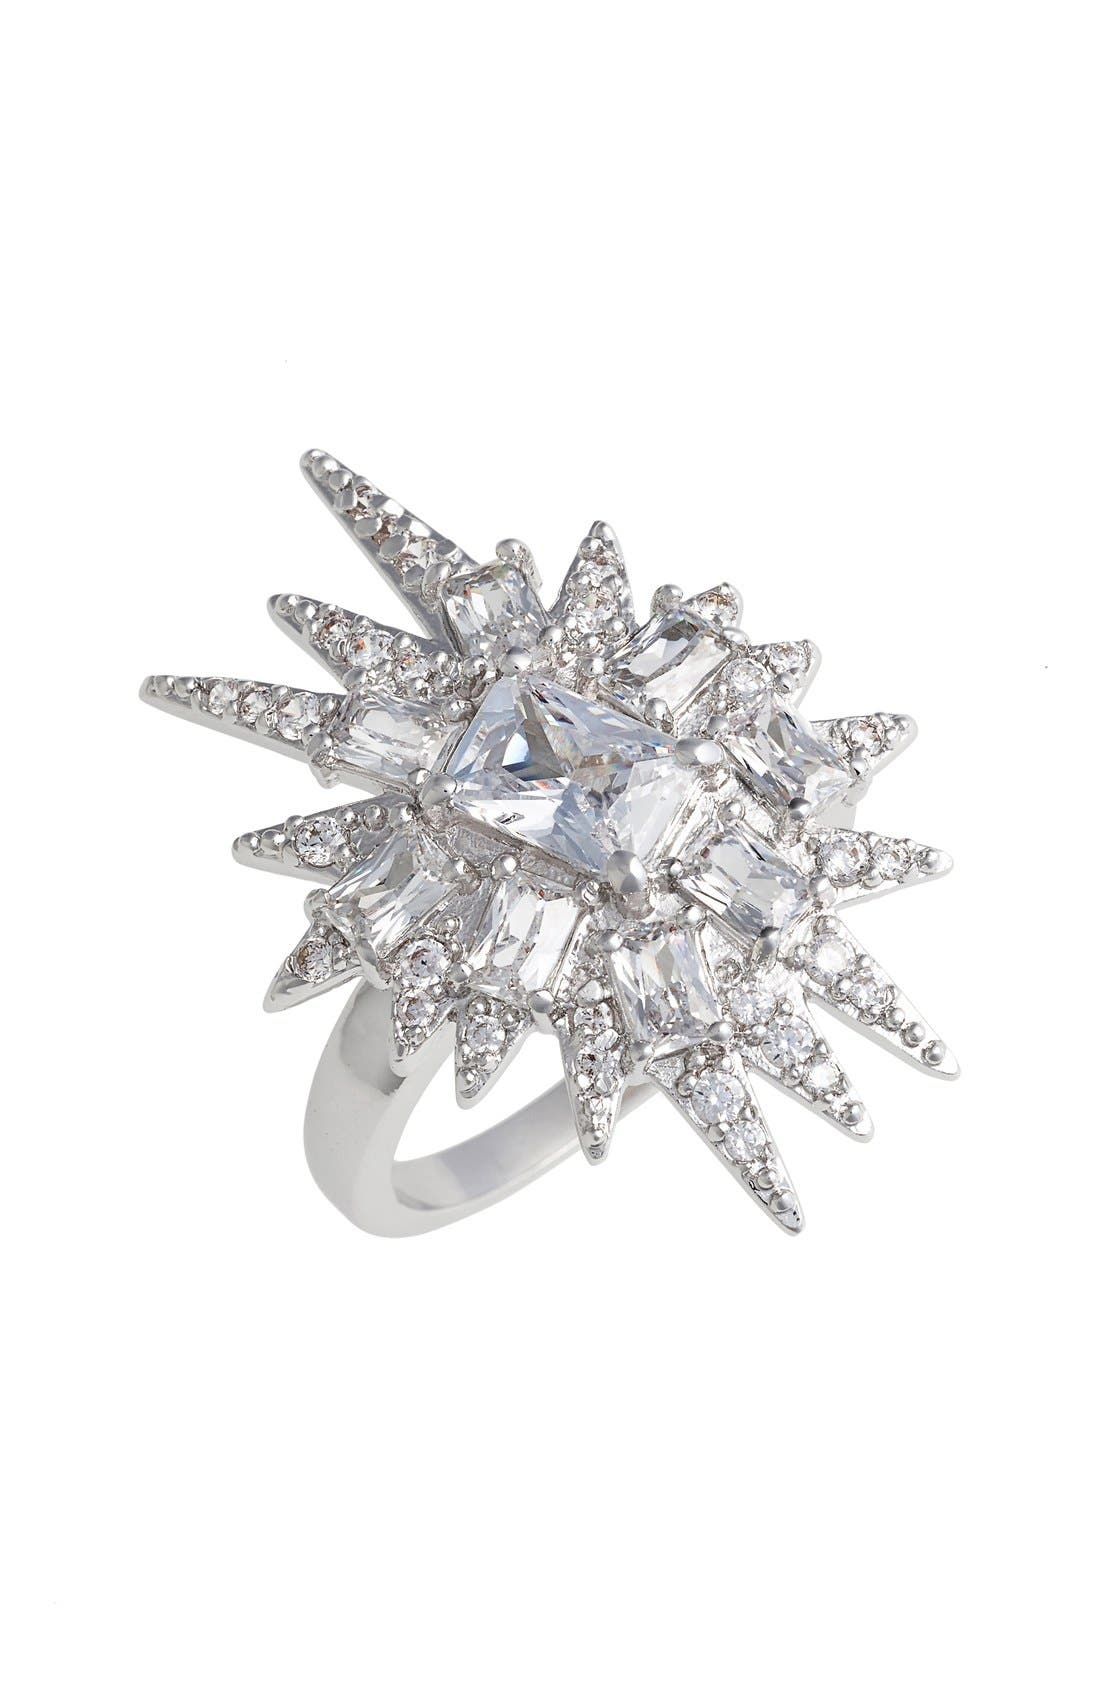 CZ BY KENNETH JAY LANE Explosion Cubic Zirconia Cocktail Ring